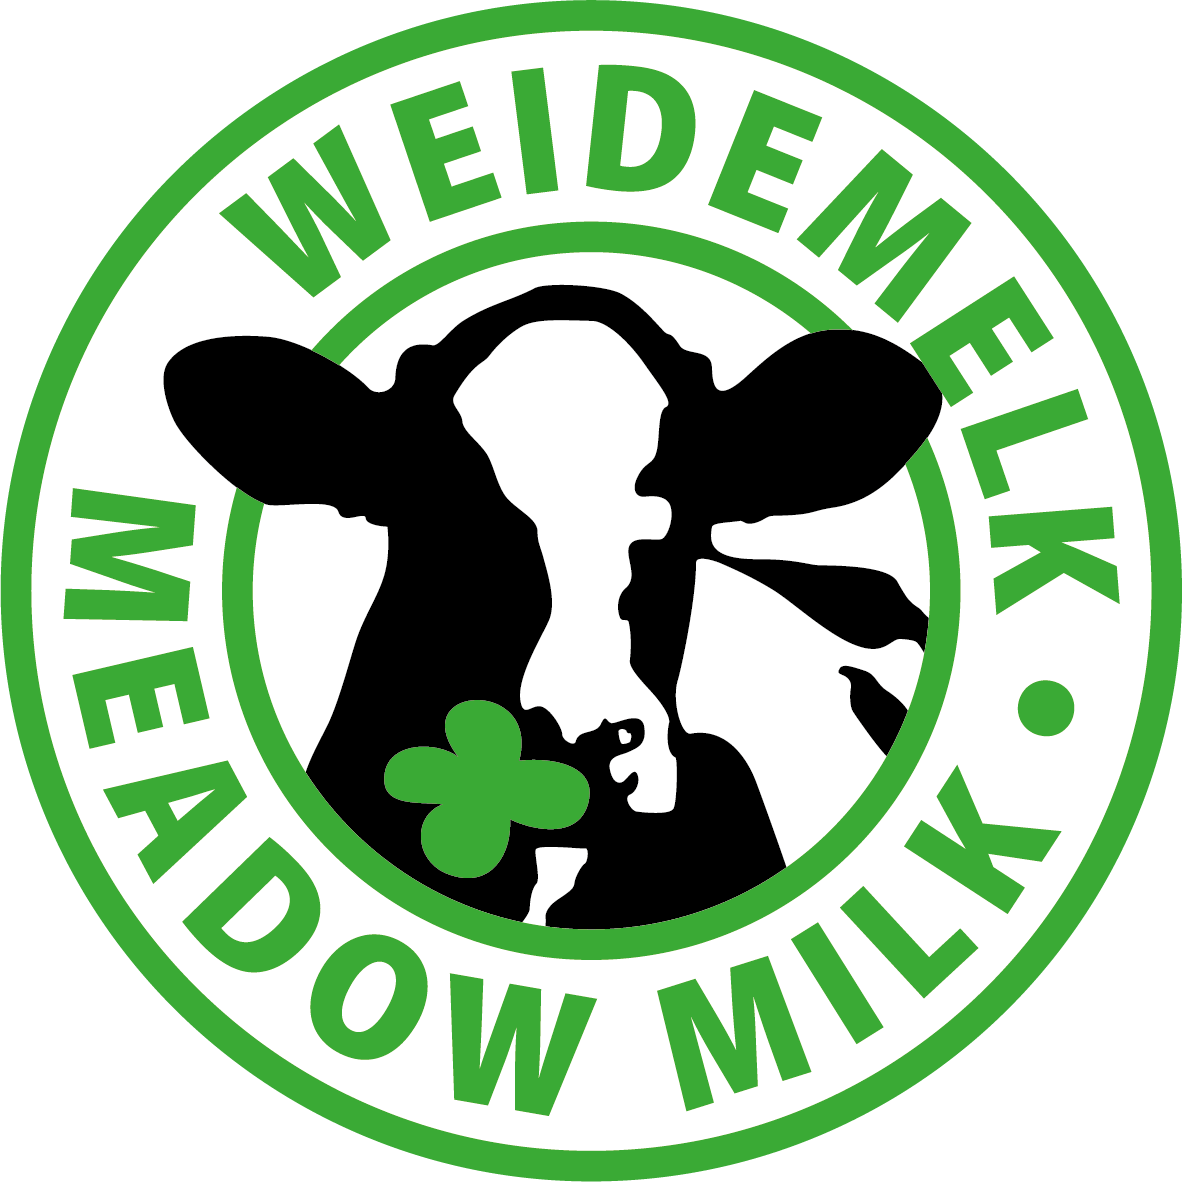 NL EN Weidemelk Meadow Milk